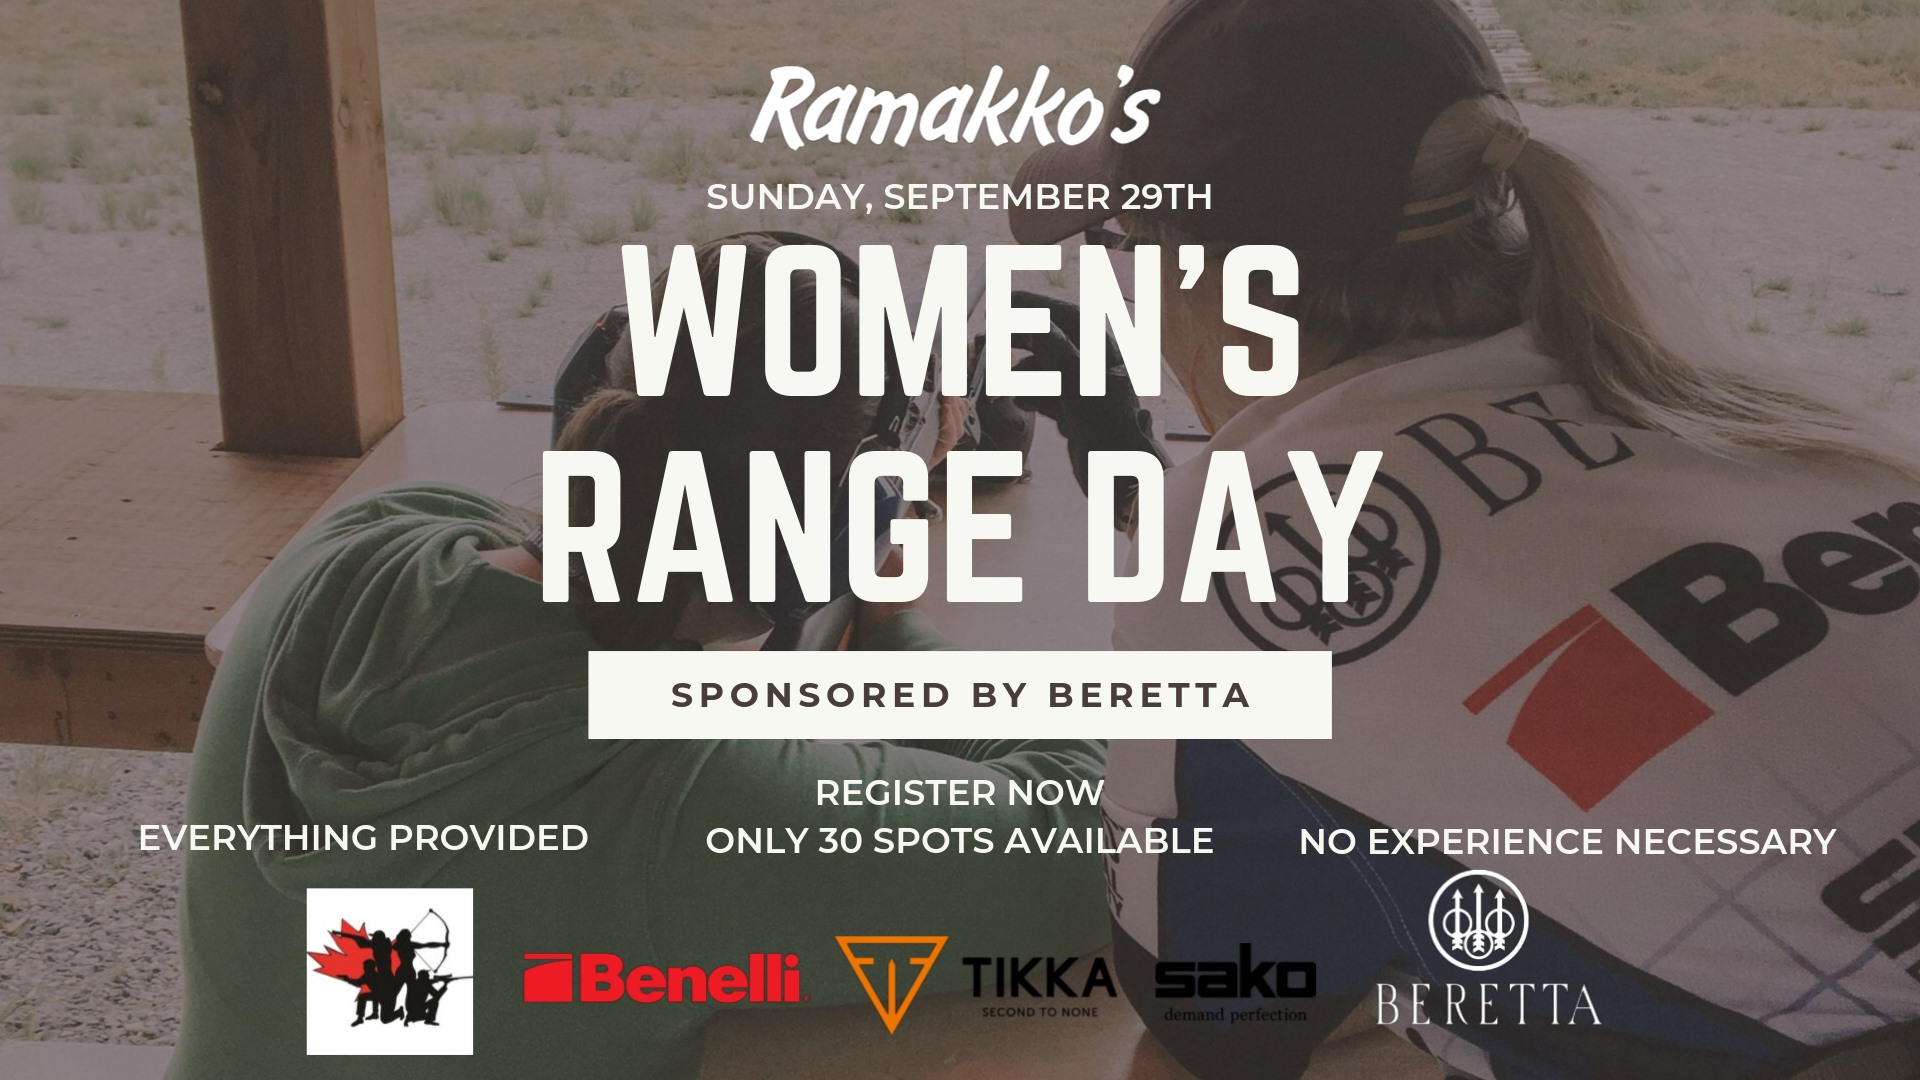 Women Range Day Ramakkos 2019